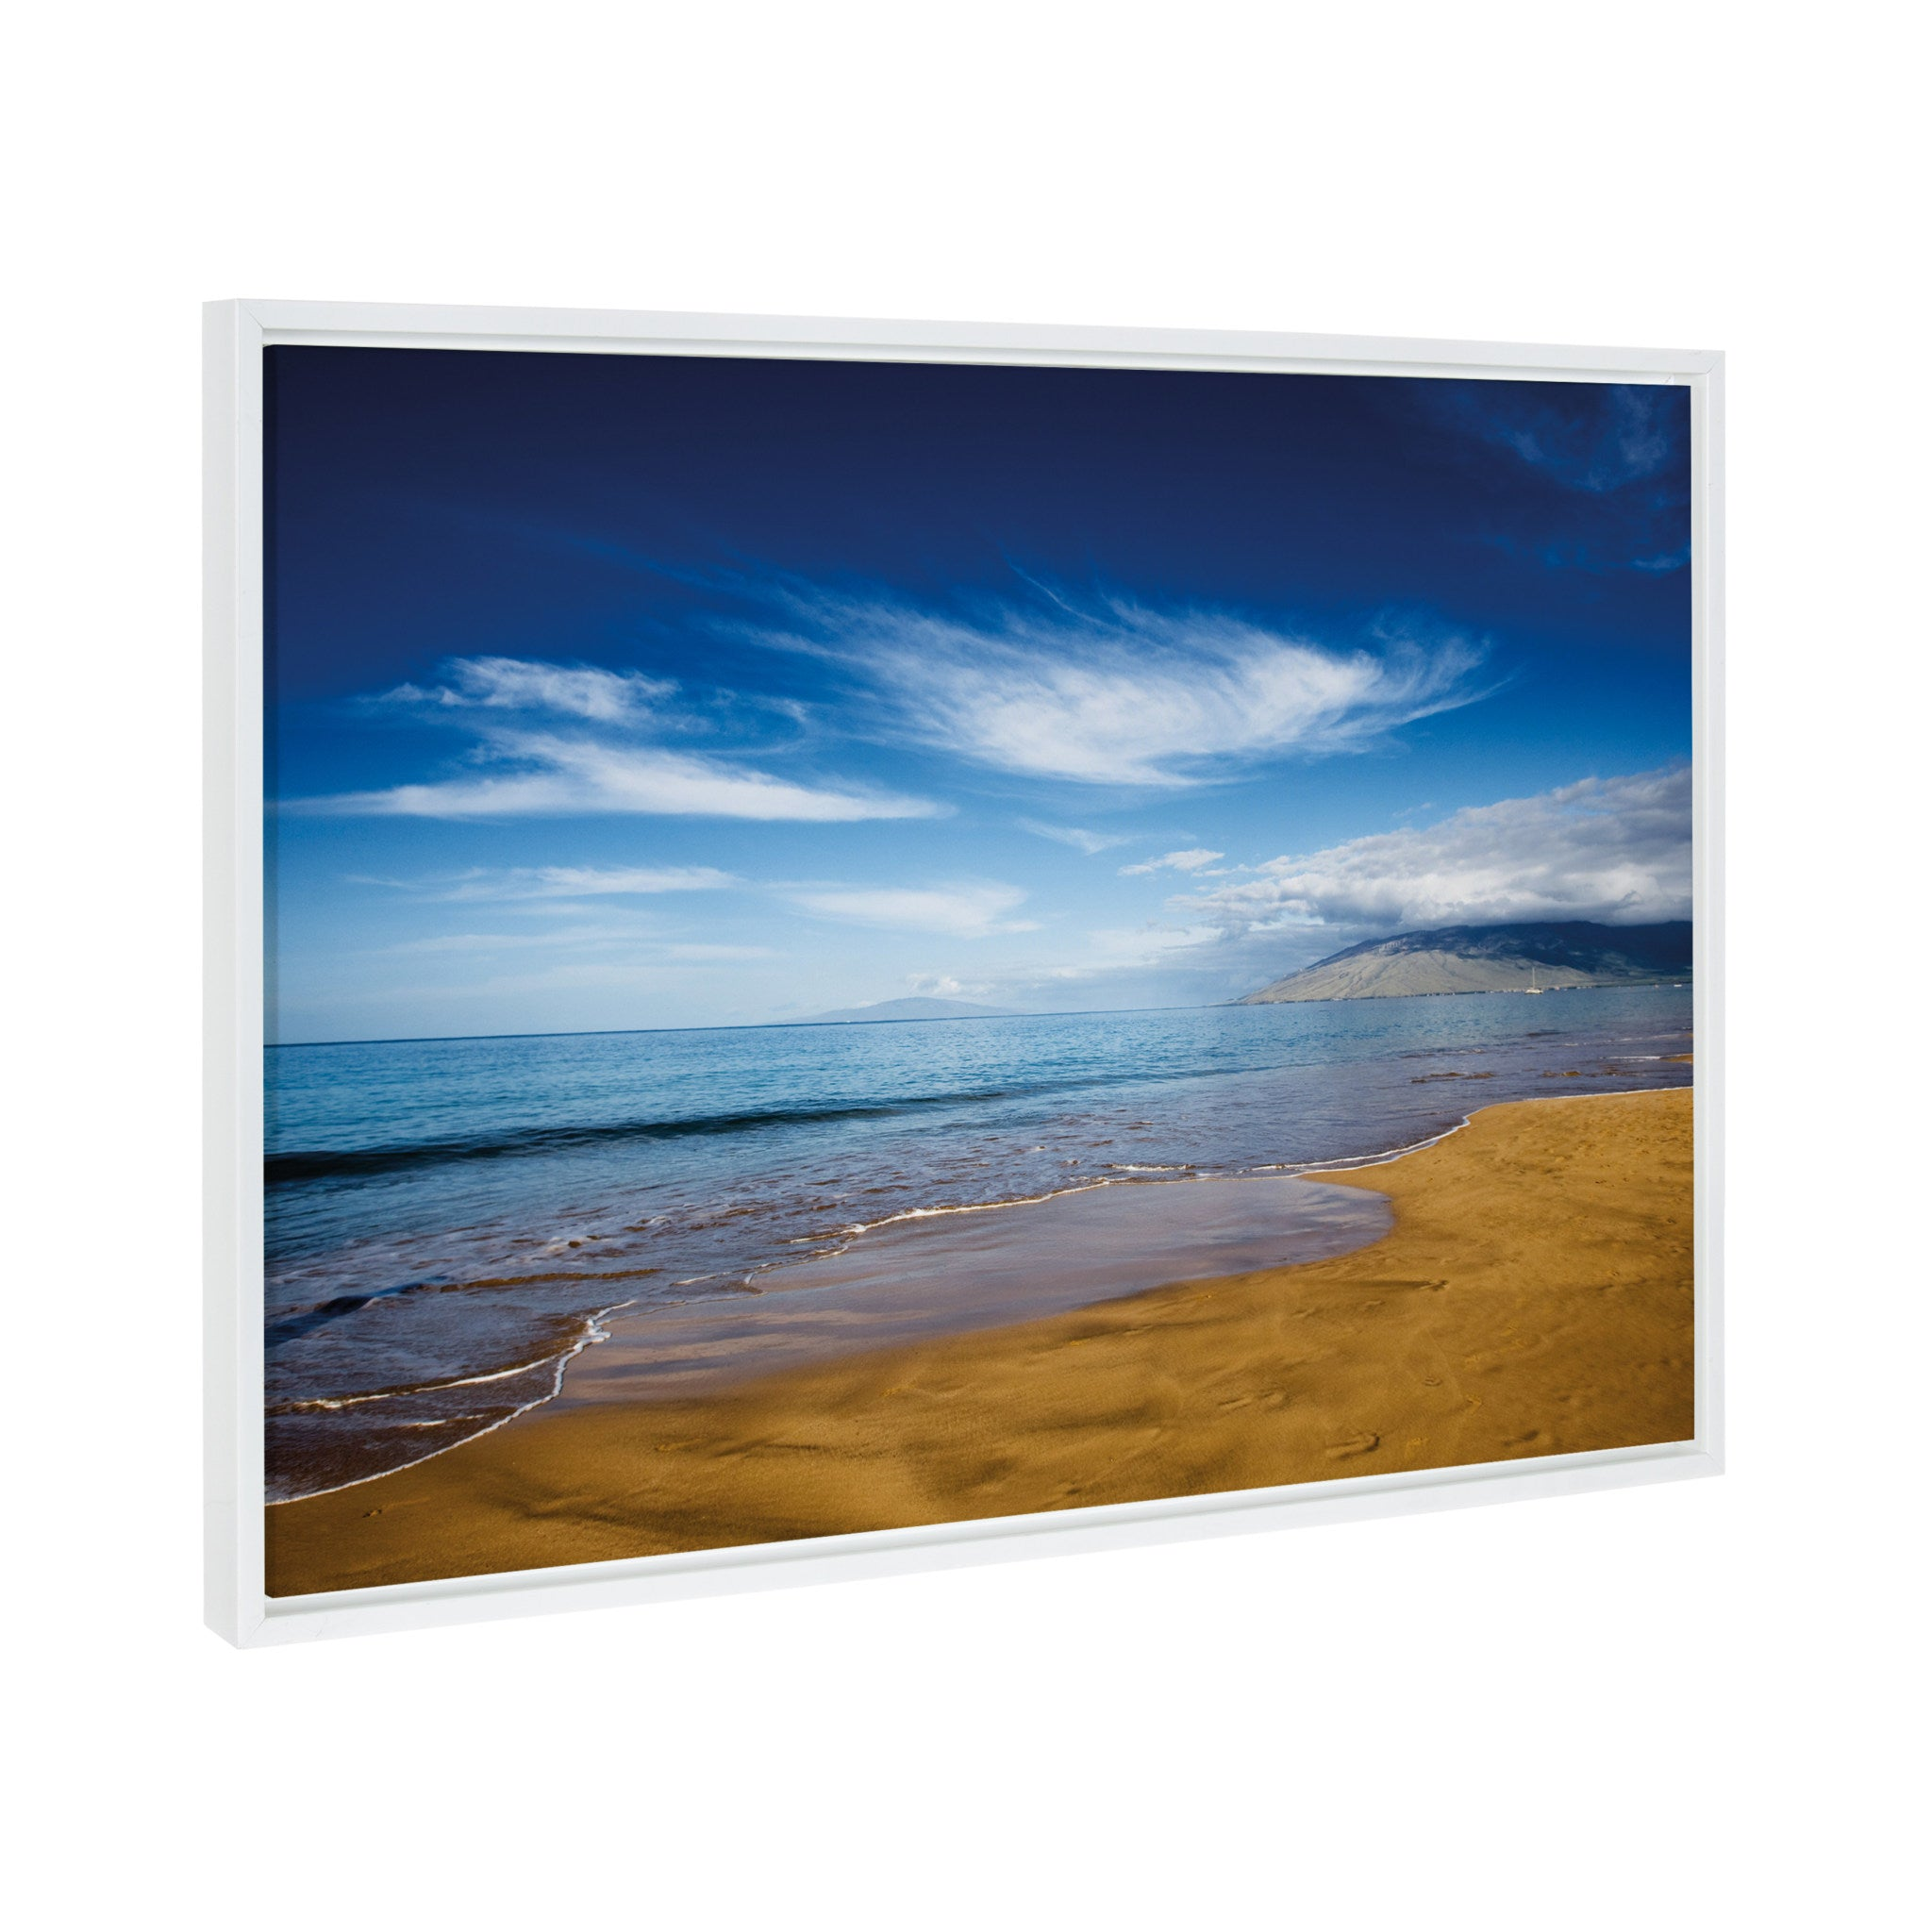 Framed Canvas, Coastal, White